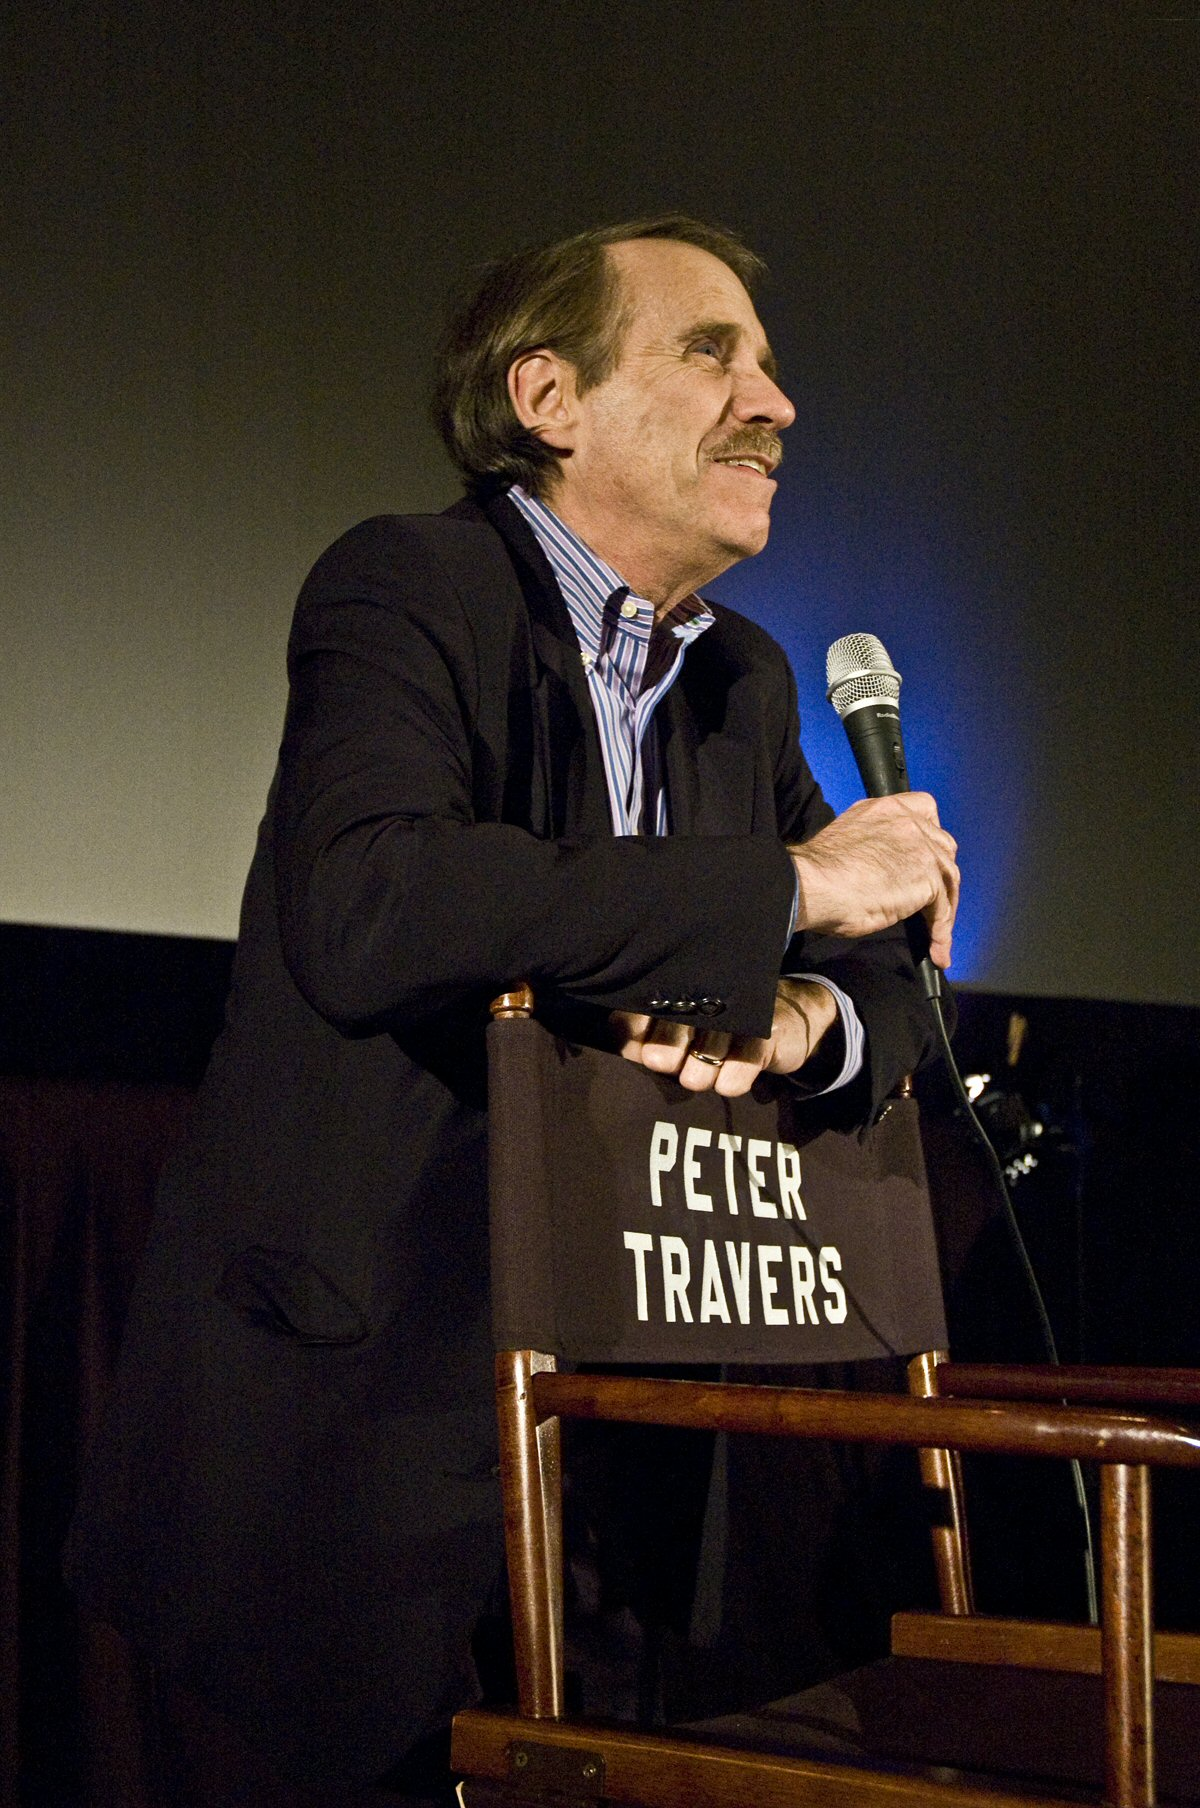 Travers in 2008